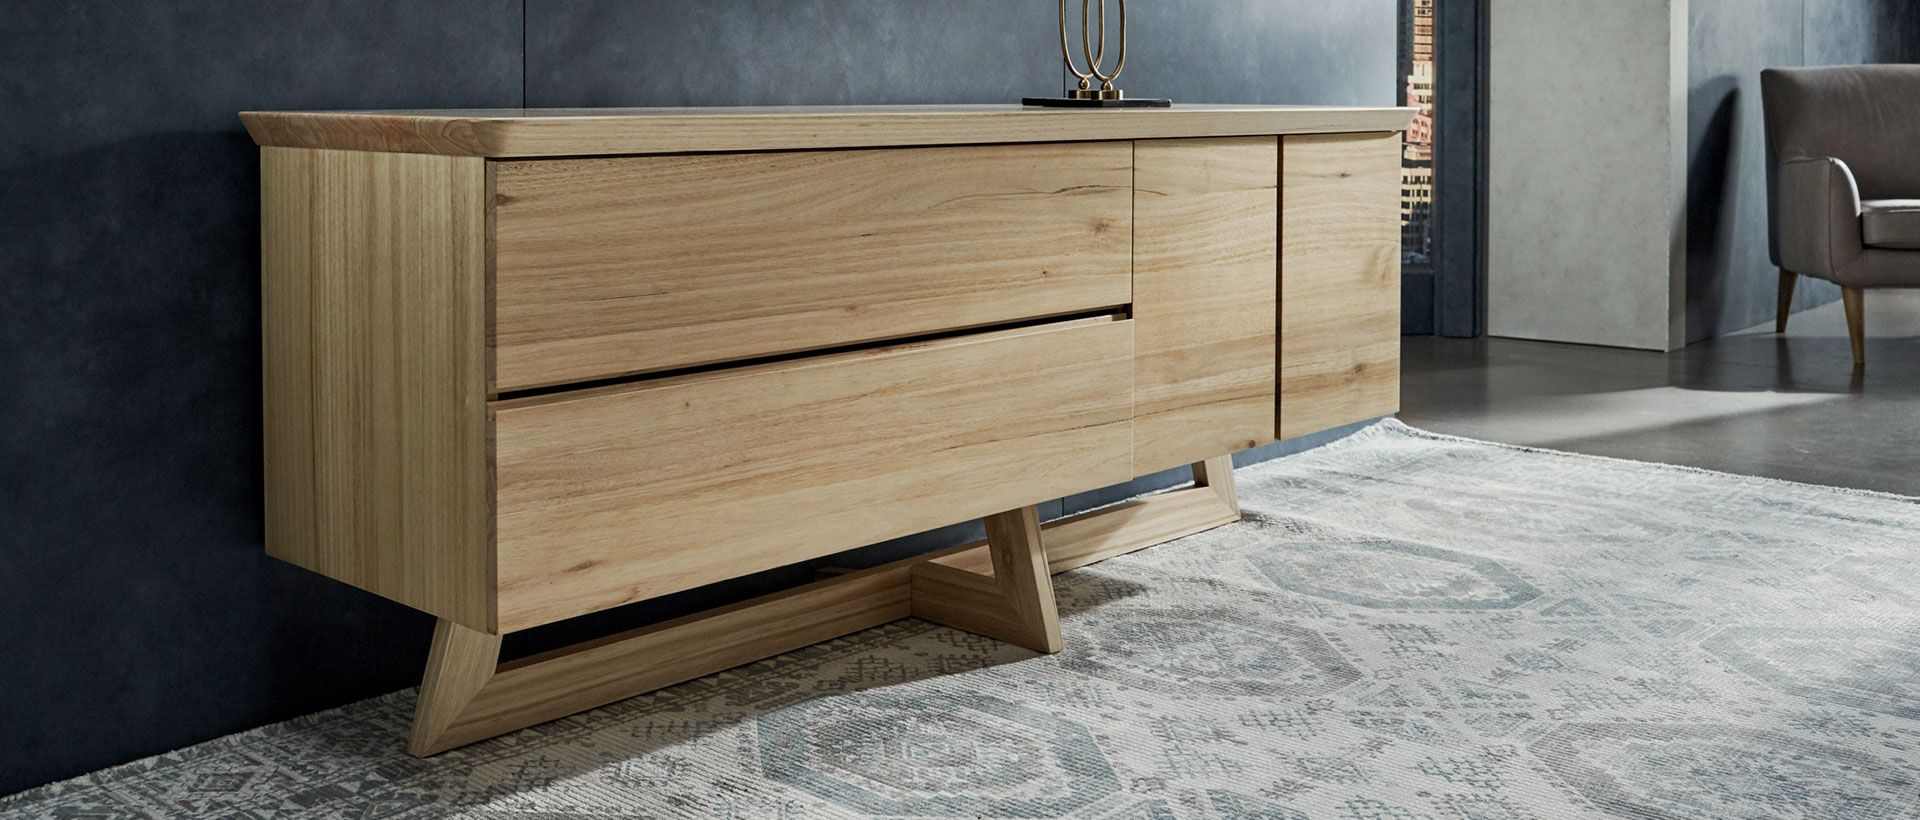 Buffets, Cabinets & Sideboards | Nick Scali In Contemporary Style Wooden Buffets With Two Side Door Storage Cabinets (View 3 of 30)